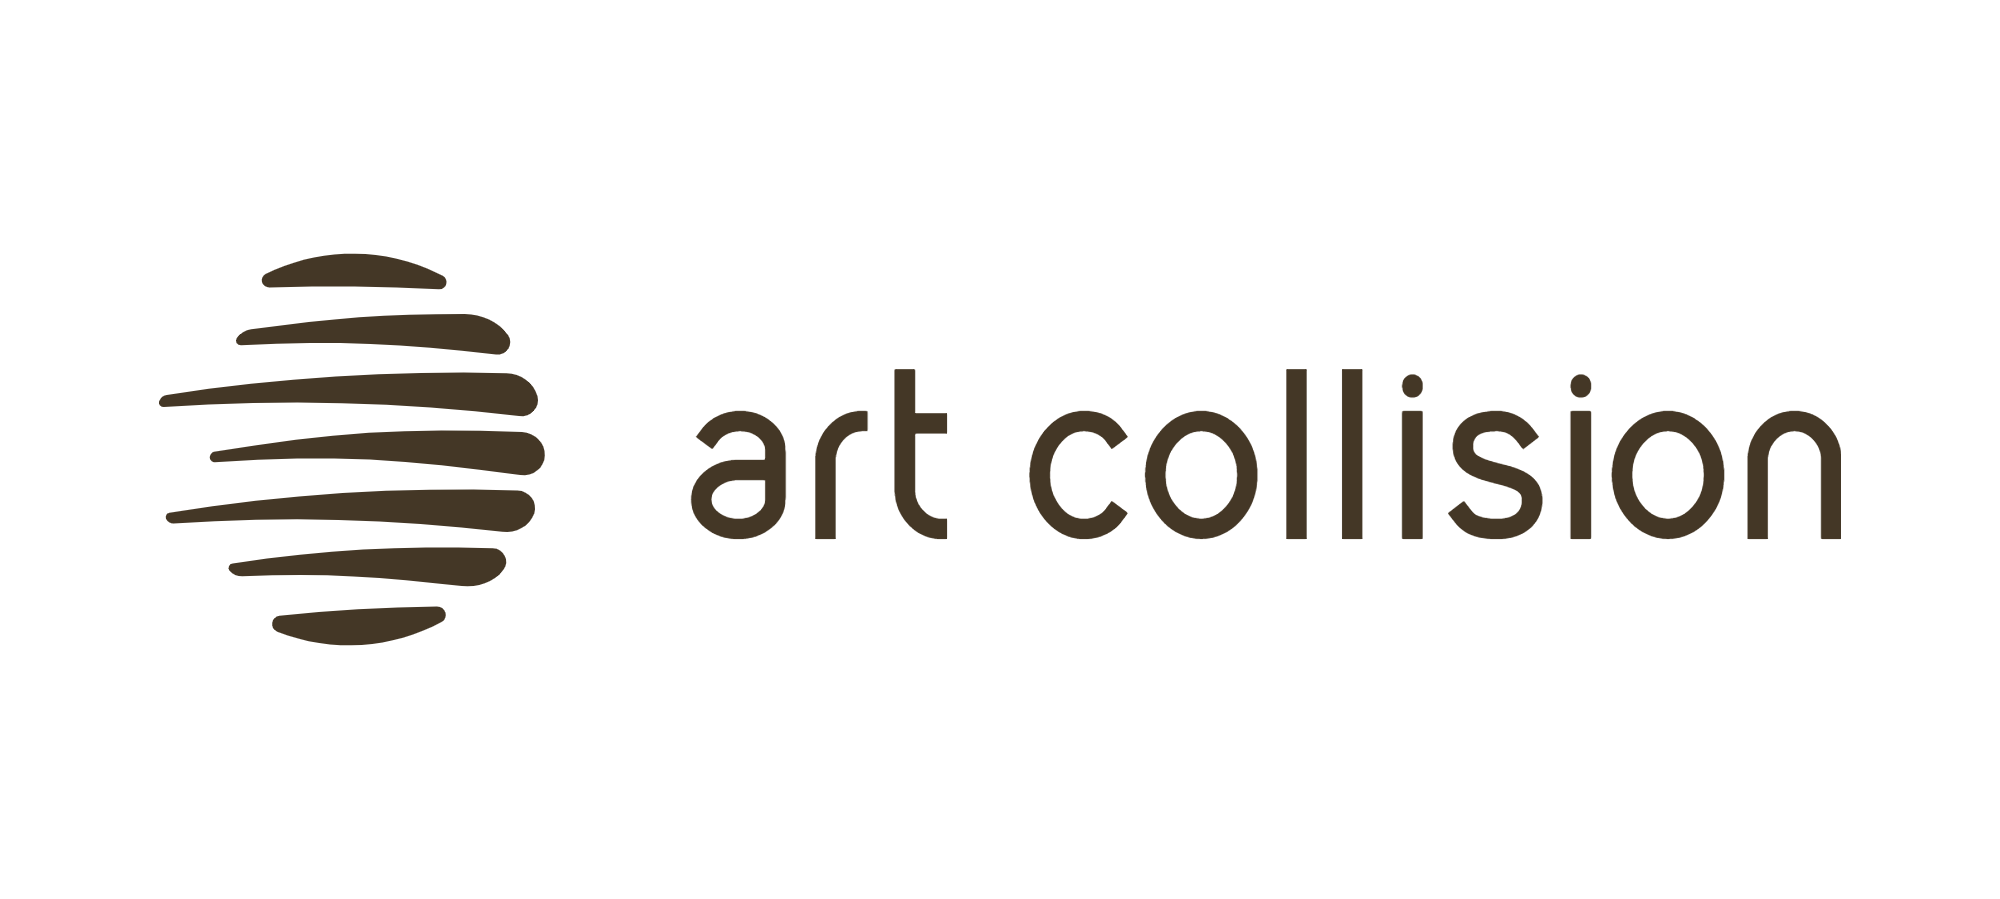 Art Collision Logo 2020 Toronto Marketing Communication Artists Gallery Dealer Art Market